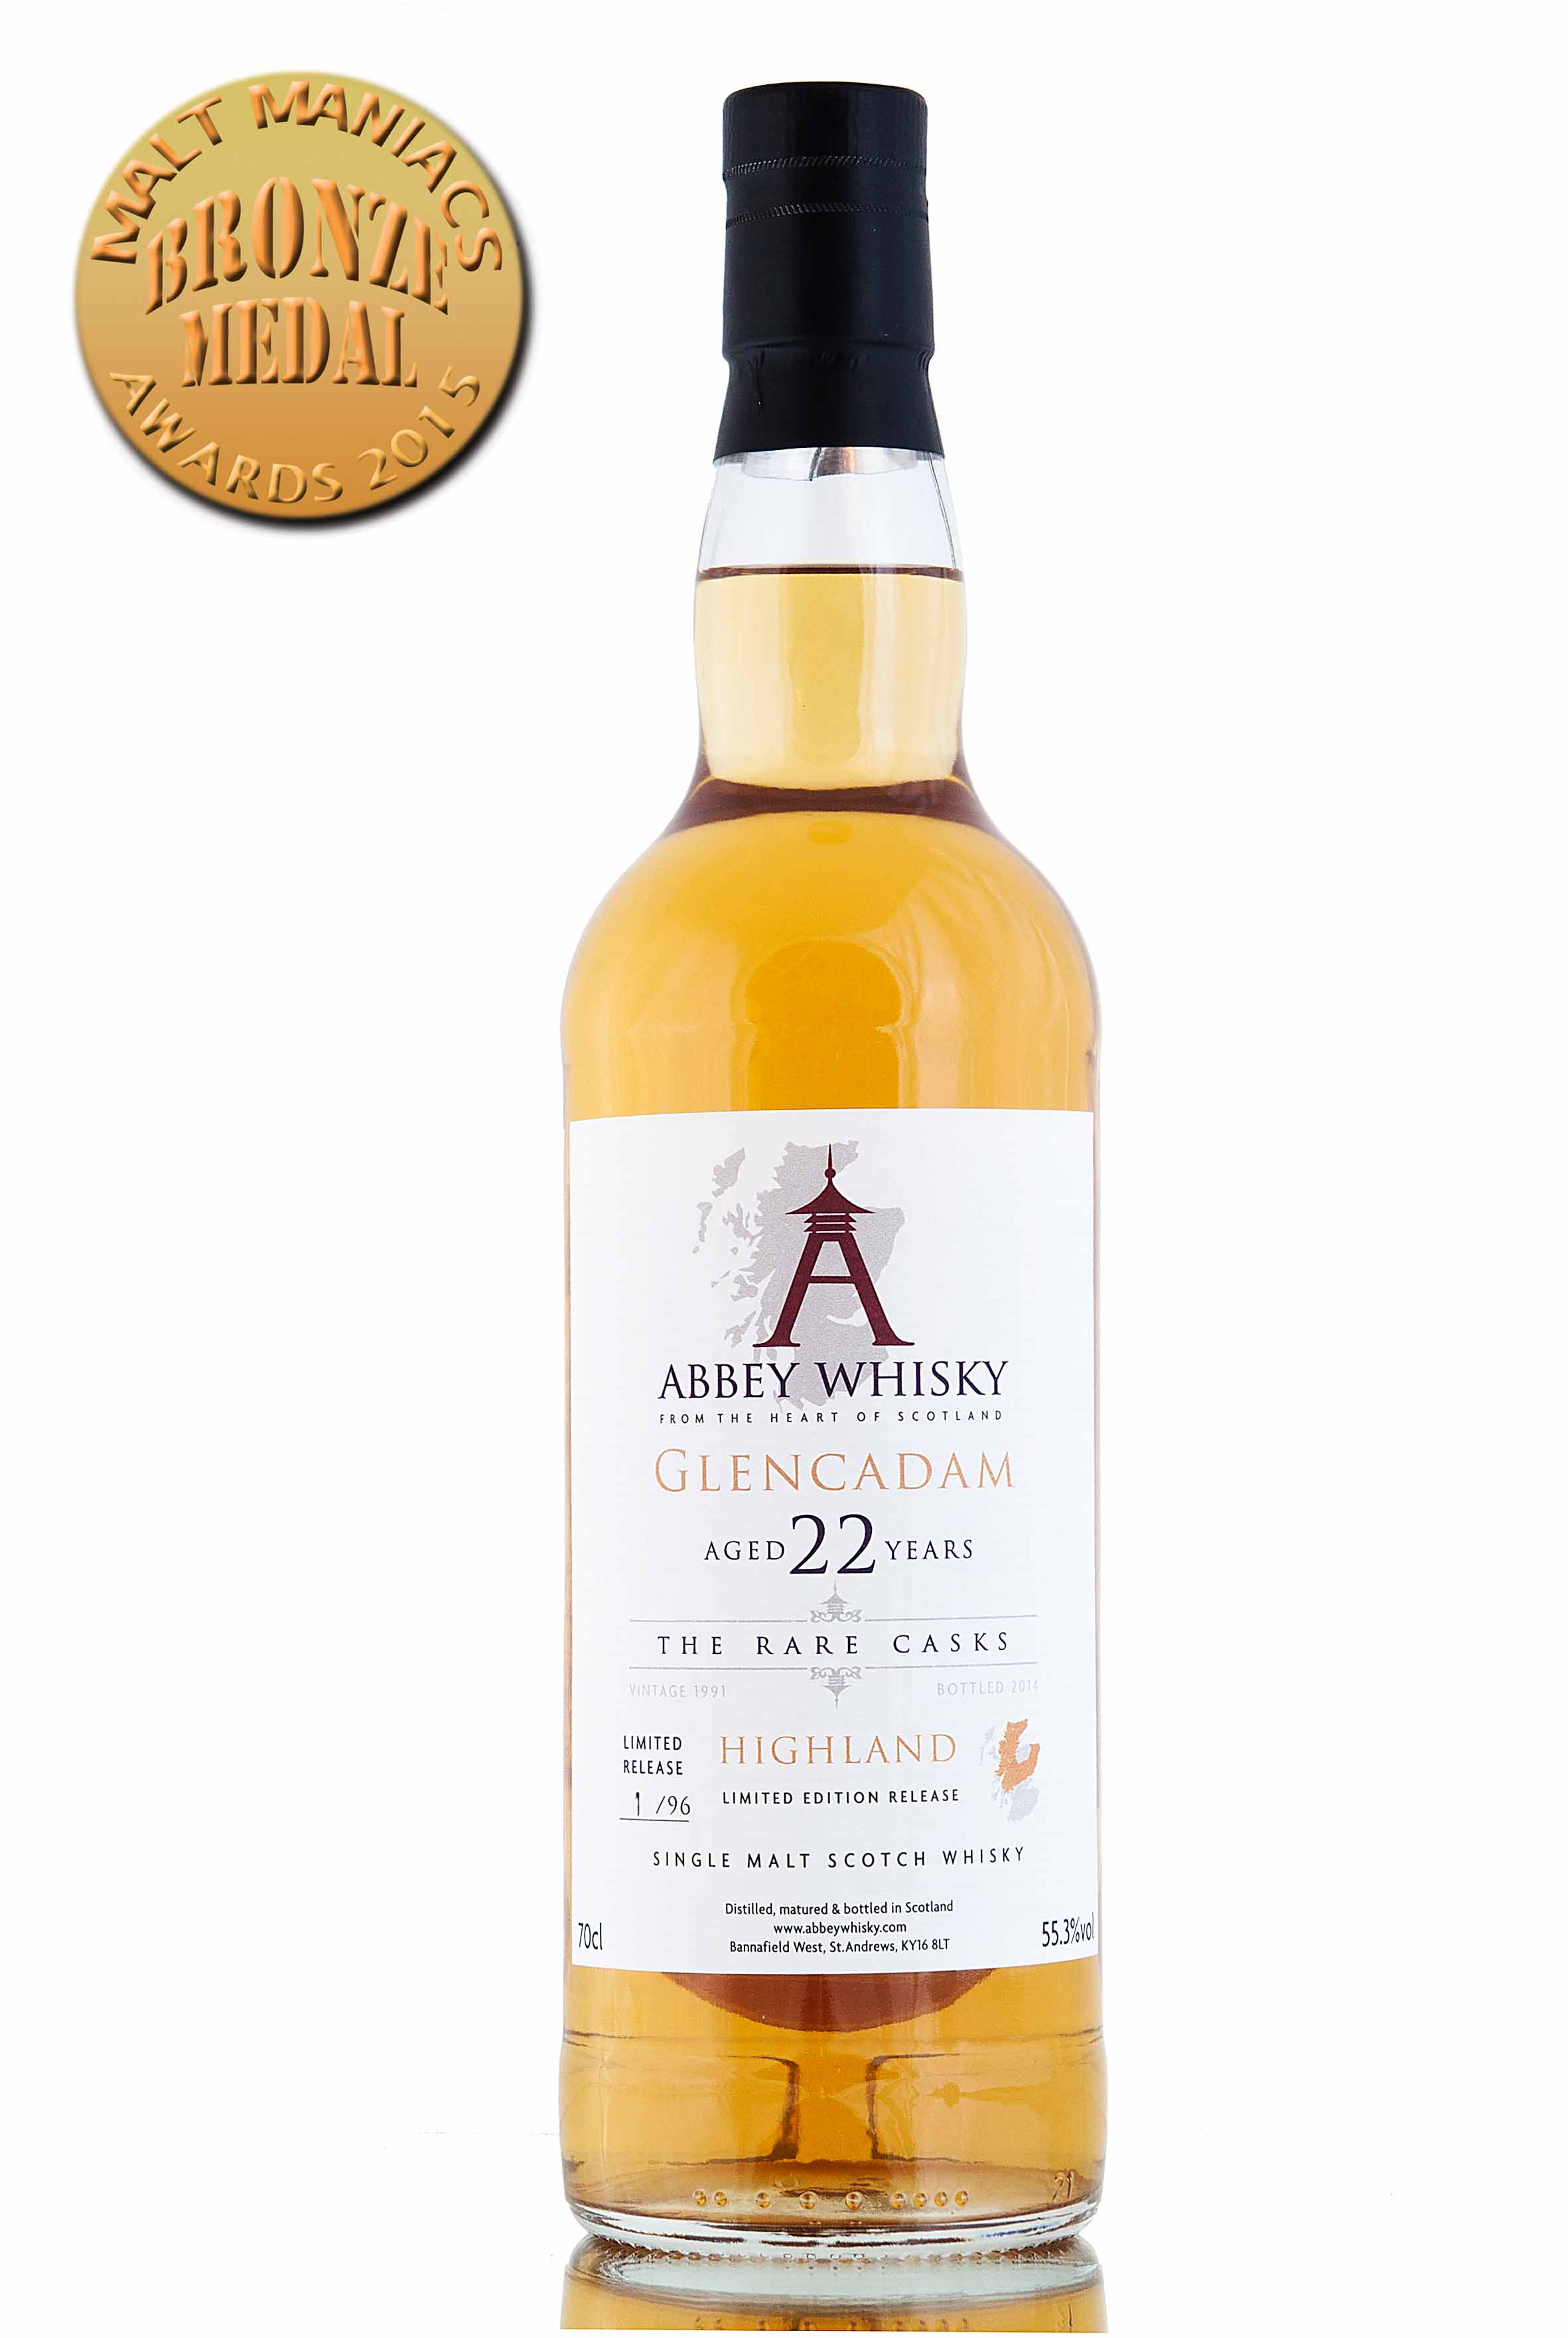 Glencadam 22 Year Old / The Rare Casks / Release 4